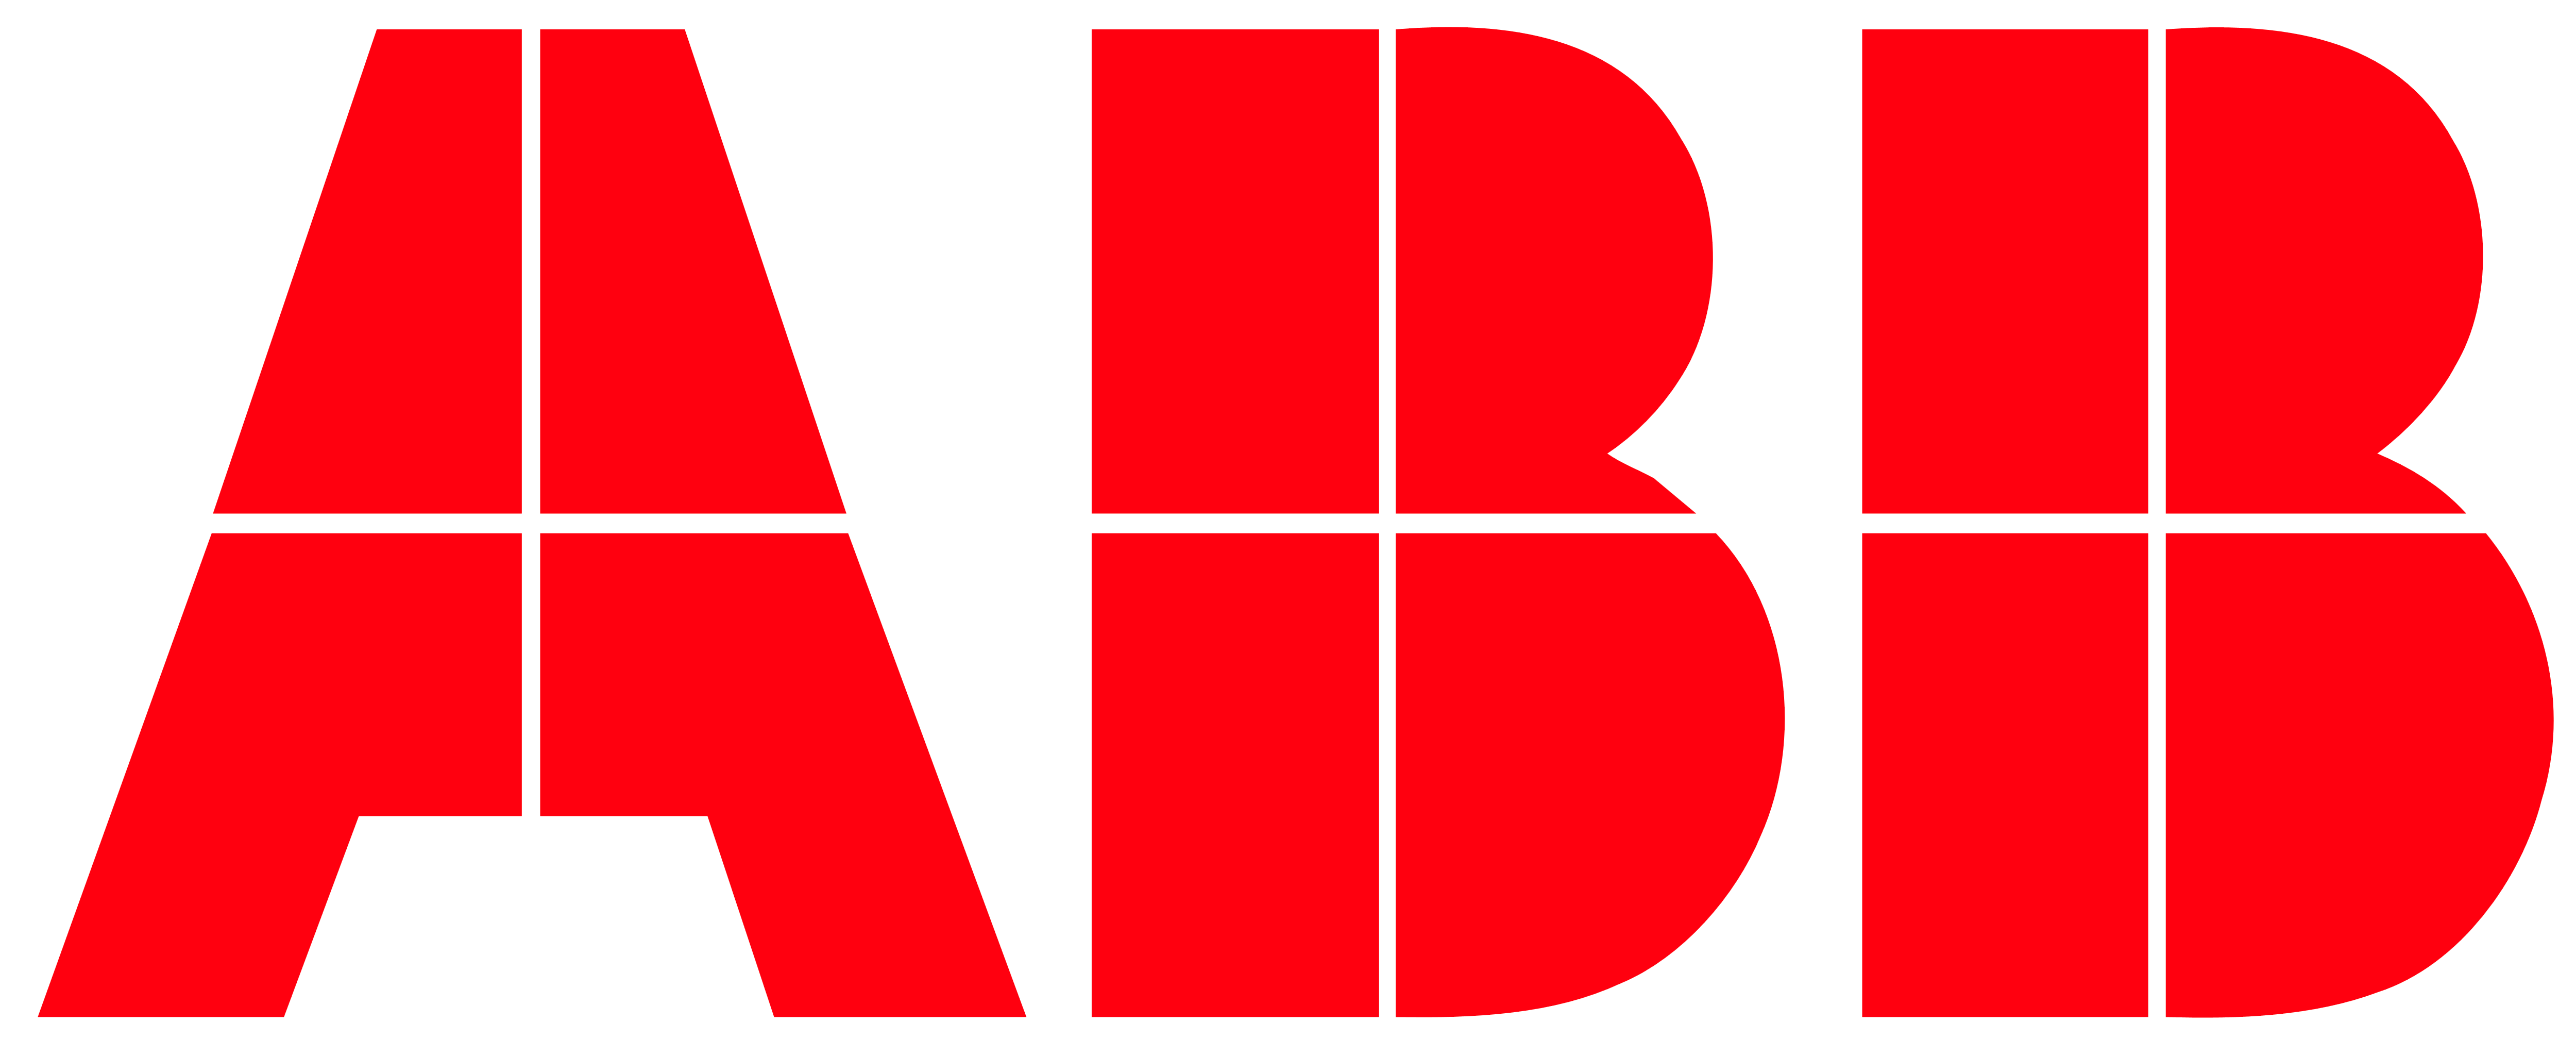 Brightness Lumens likewise 9392 Abb Logo Download likewise Paul Nipkow as well Photos Towns moreover ProdView. on westinghouse electric corporation